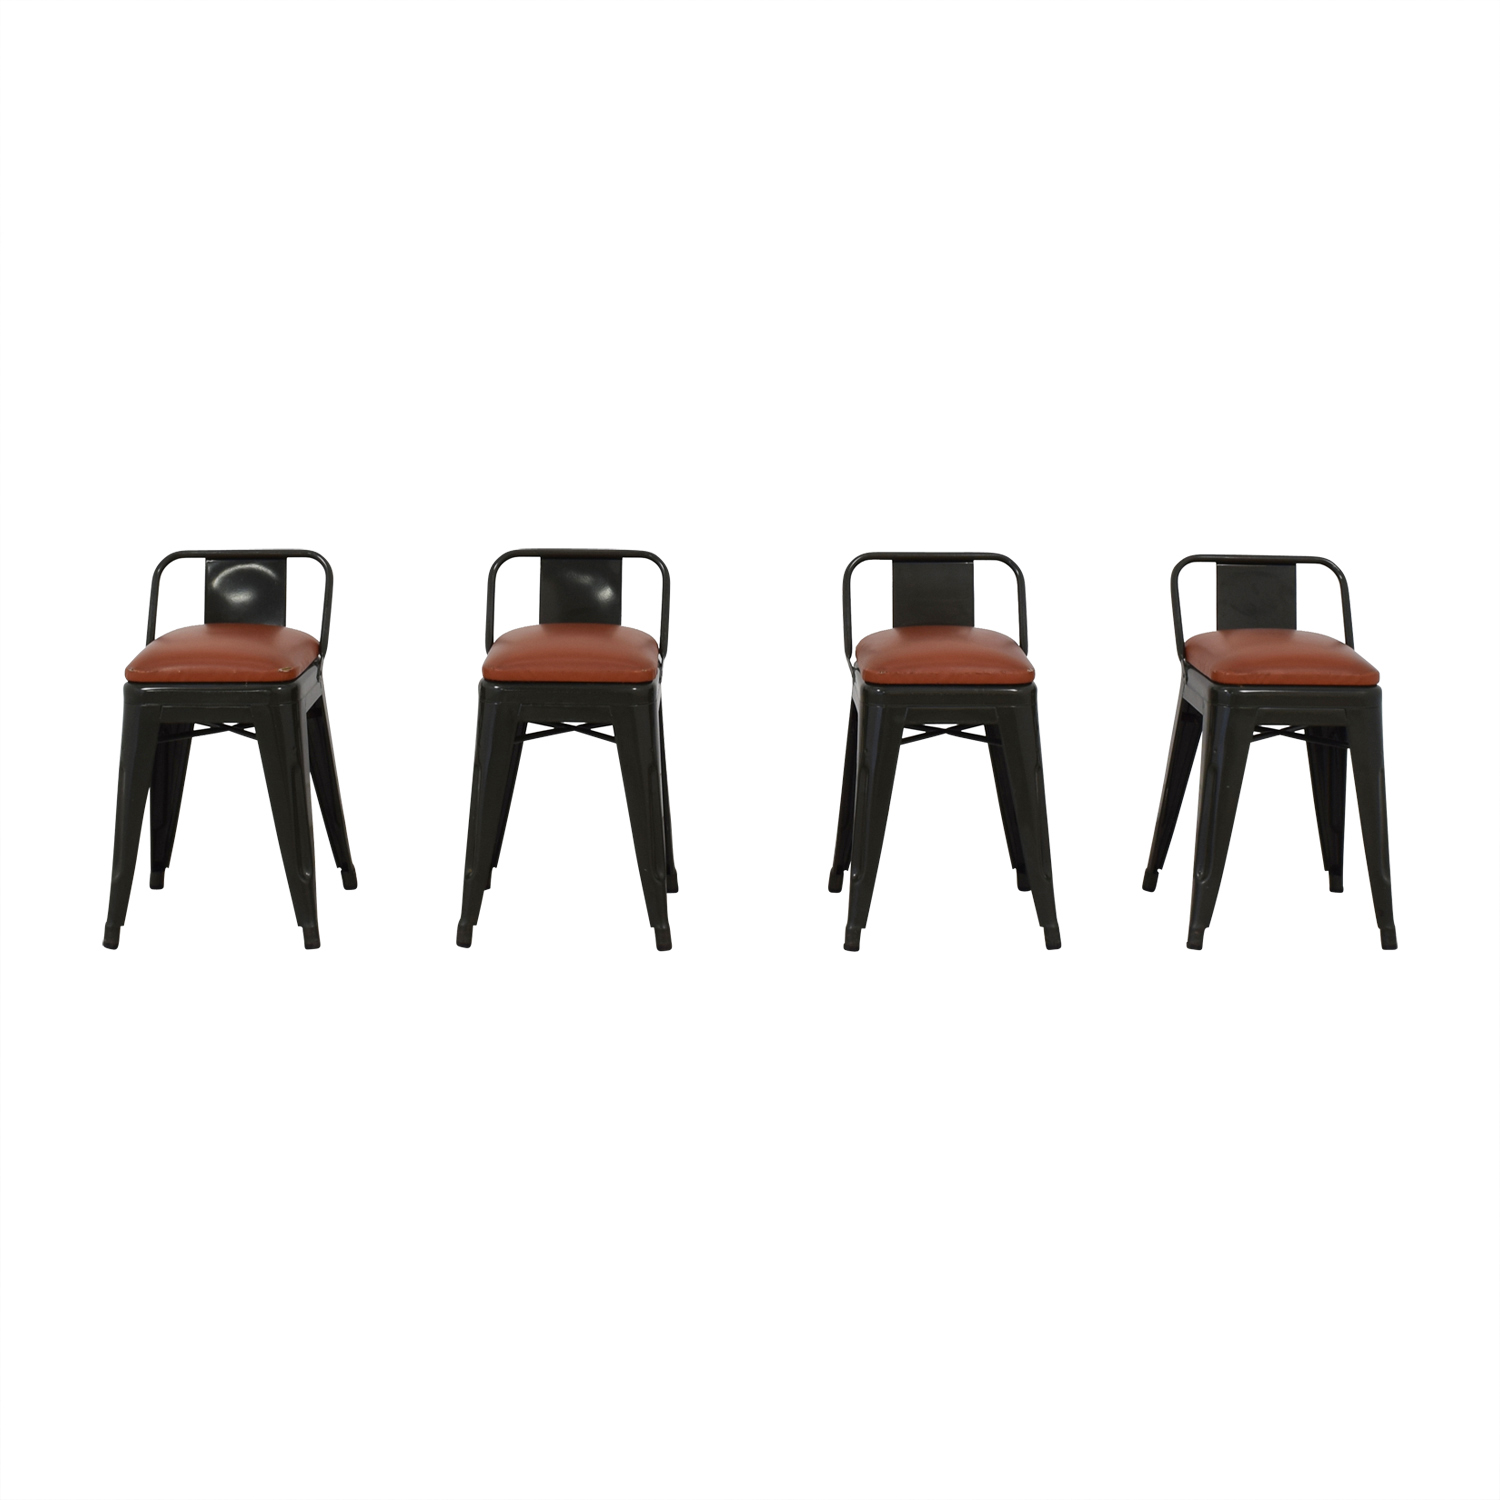 Tolix Industrial Stools / Chairs